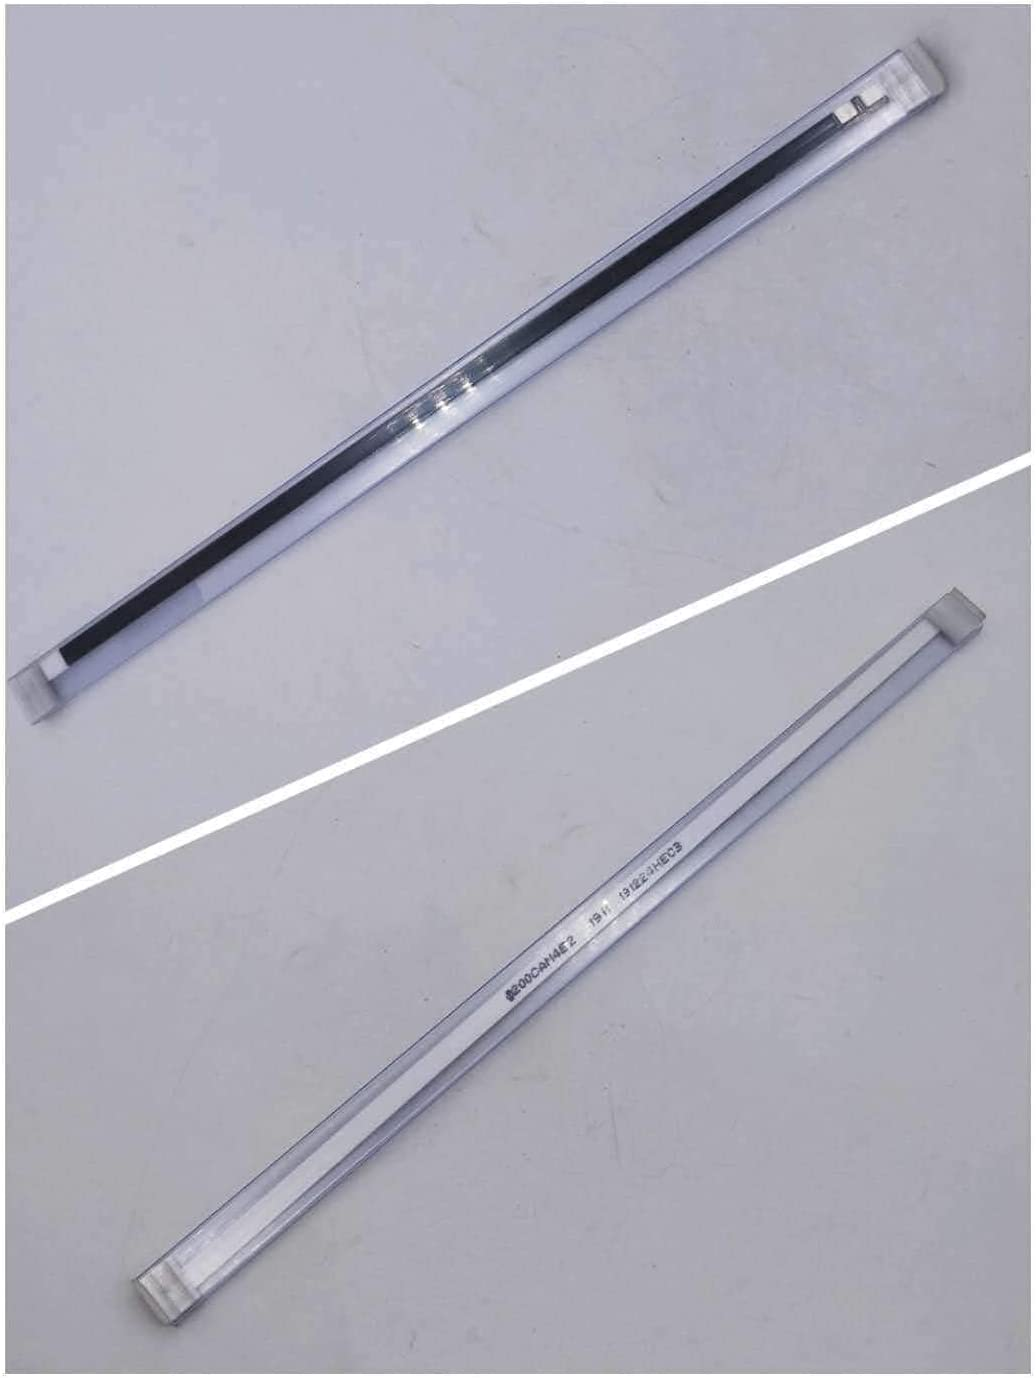 Replacement Parts Accessories for Printer Heating Element Rm1-4007 110V Compatible with HP Laserjet Pro M1136 M1212 M1213 M1214 M1217